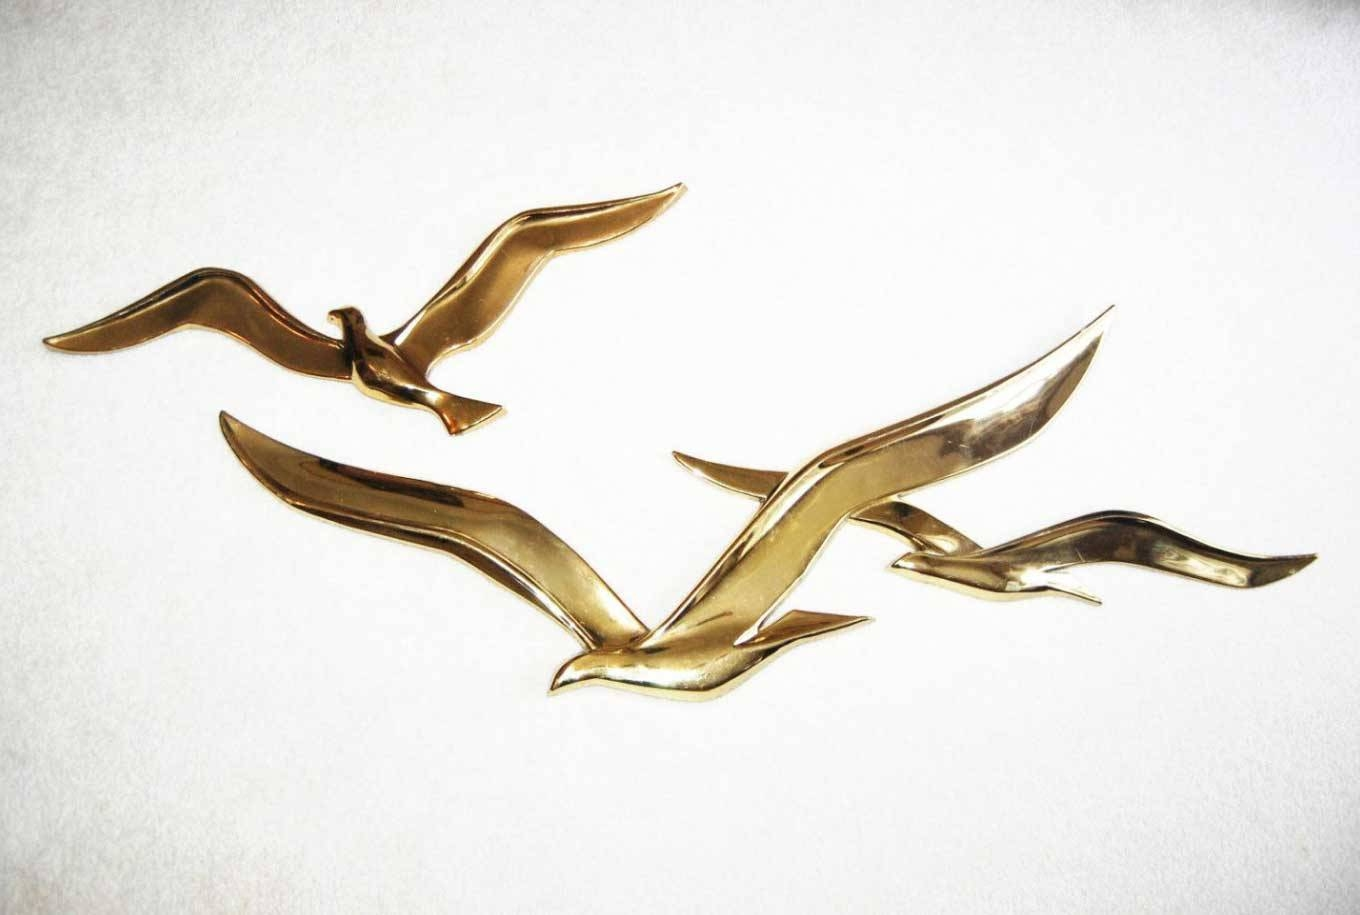 Flying Birds Metal Wall Art Gold Sculpture | Home Interior & Exterior Regarding 2018 Flock Of Birds Metal Wall Art (View 17 of 30)